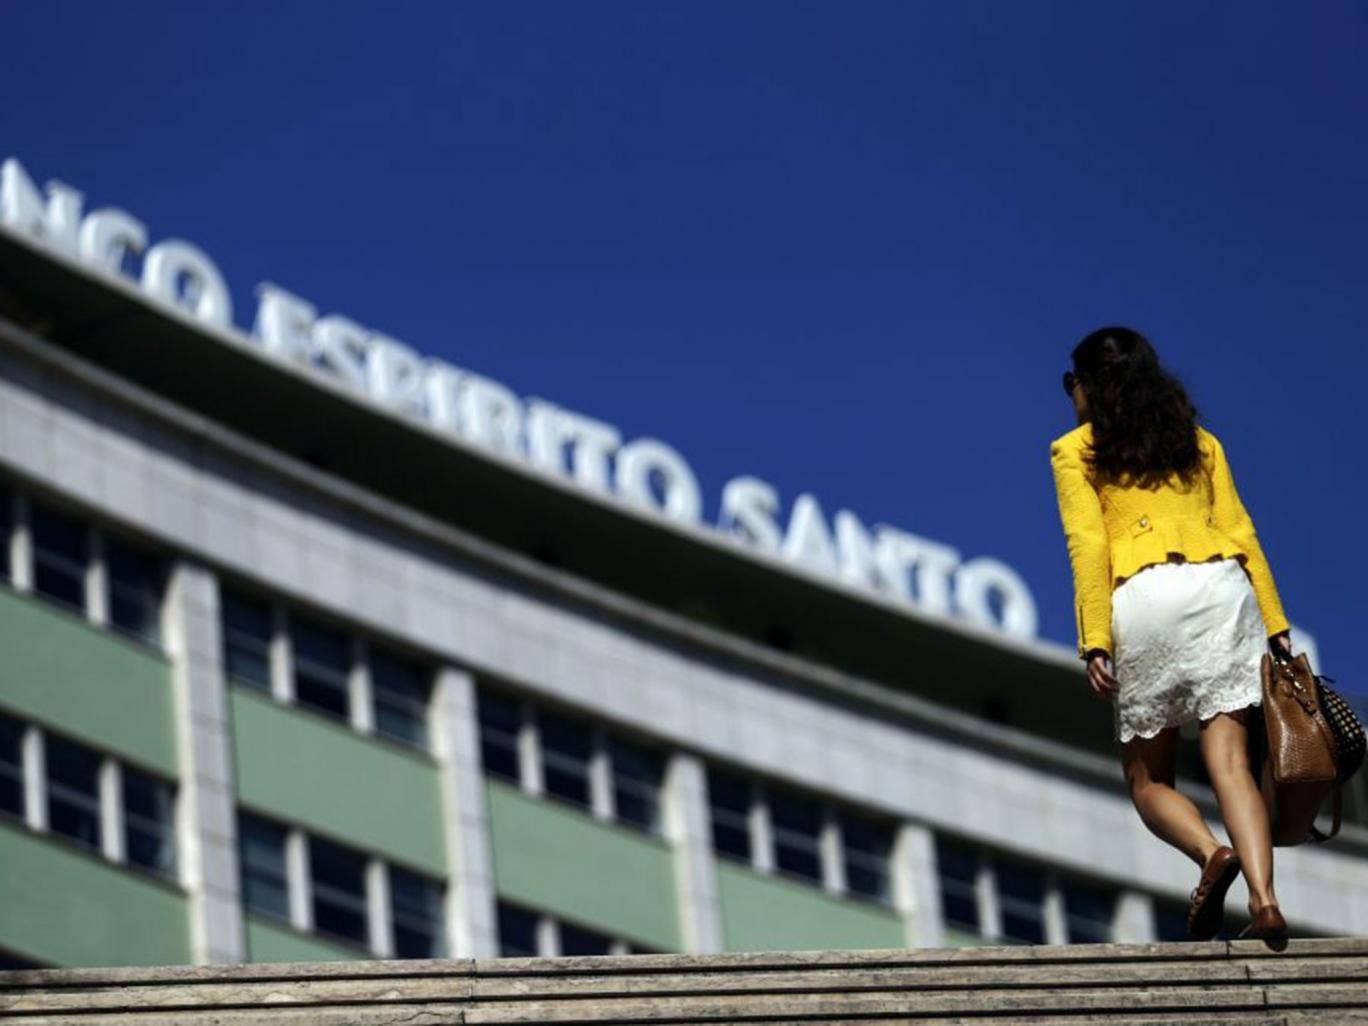 Banco Espirito Santo in Lisbon, Portugal: The bank needed bailing out despite passing stress tests